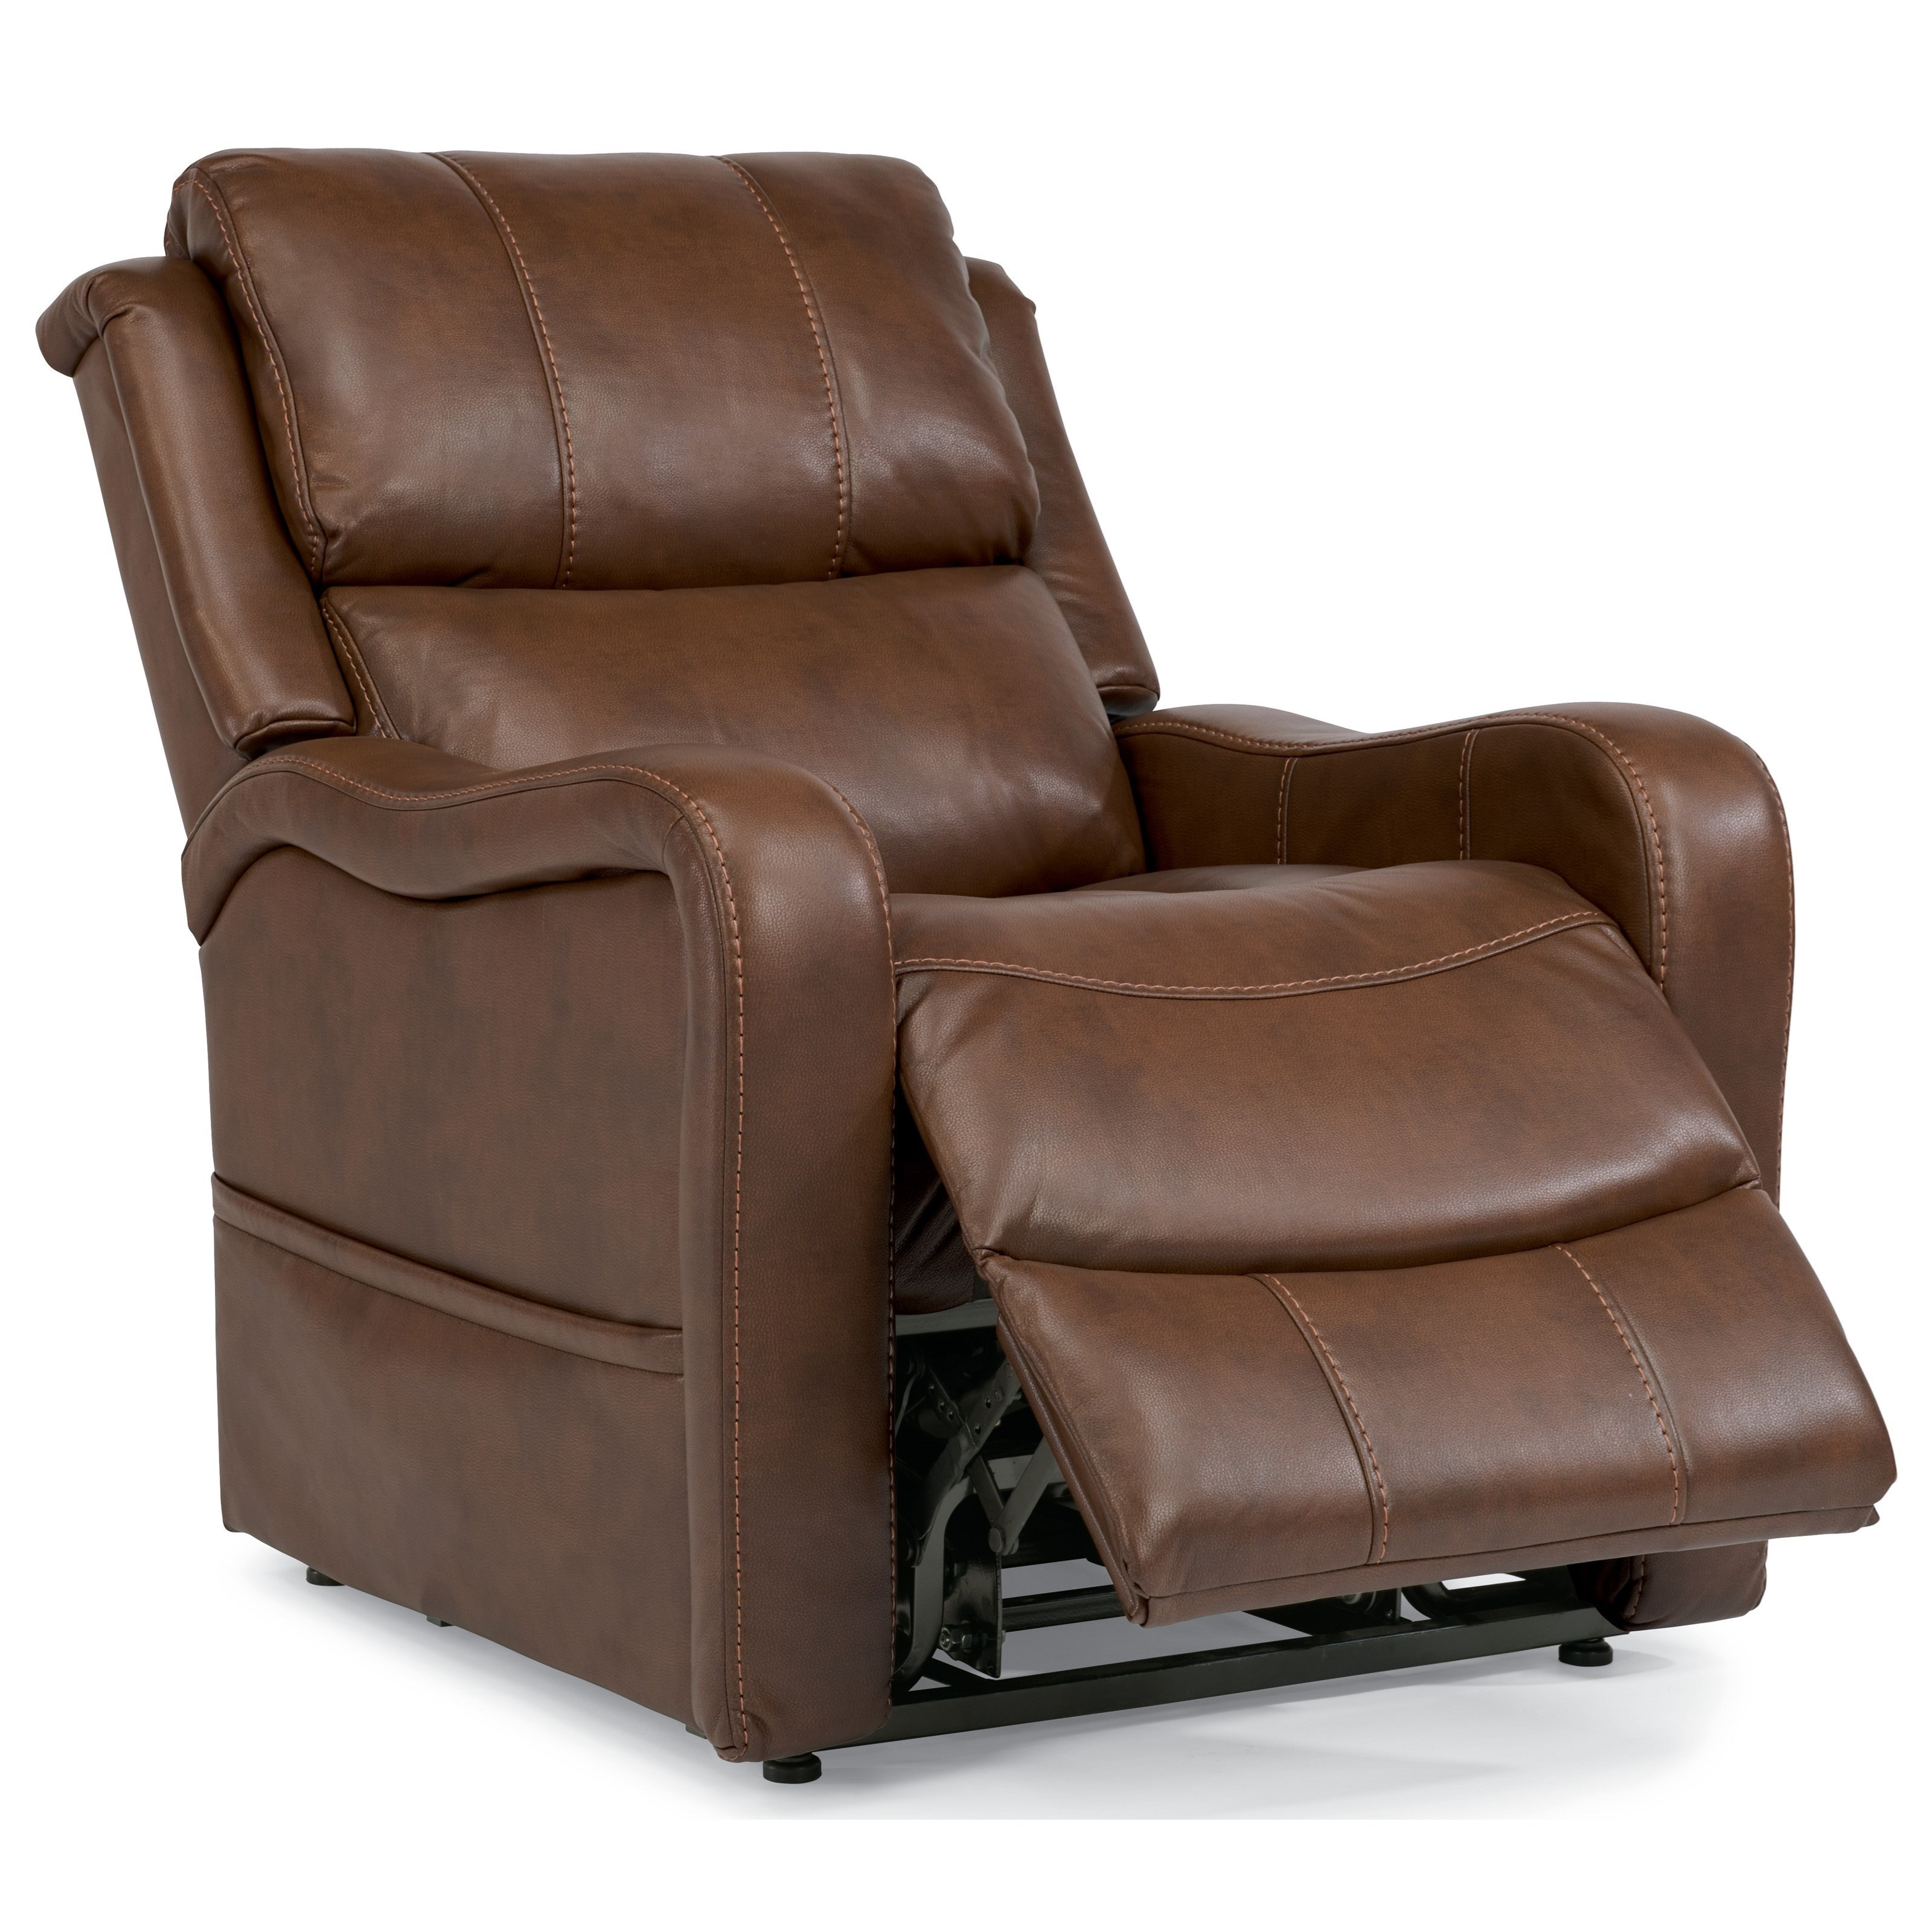 Flexsteel Latitudes Lift Chairs Lift Recliner w/ Right-Hand Cntrl - Item Number  sc 1 st  Wayside Furniture & Flexsteel Latitudes Lift Chairs Bailey Three-Way Power Lift ... islam-shia.org